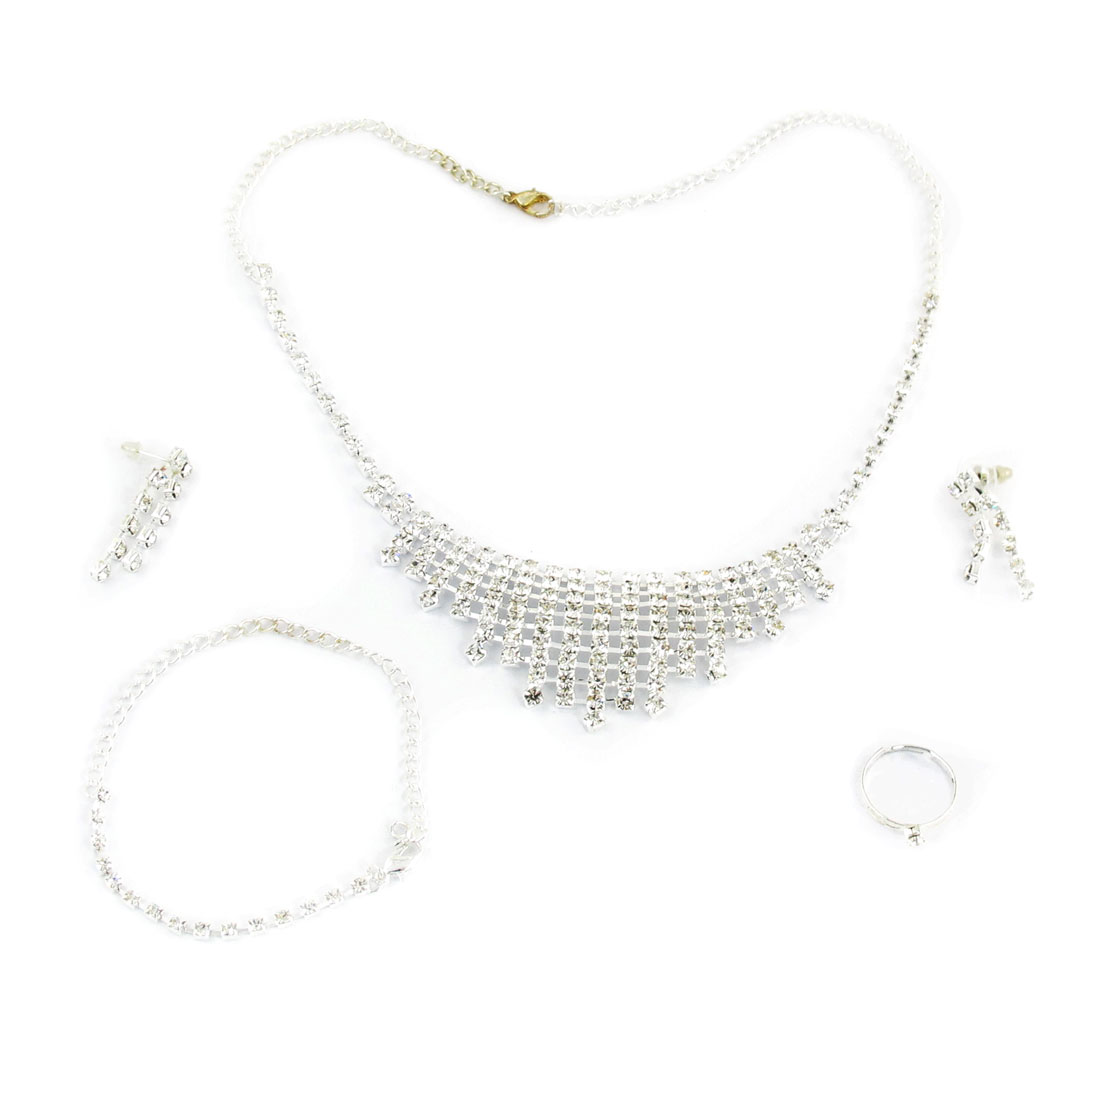 Wedding Ladies Shiny Rhinestones Dangling Necklace Bracelet Finger Ring Jewelry 4 in 1